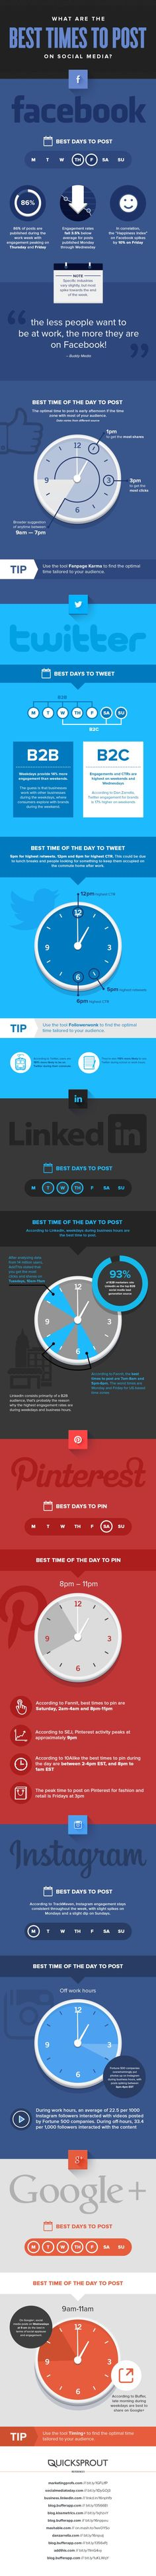 #Infographic: When to post to LinkedIn, Instagram and Pinterest #SocialMedia